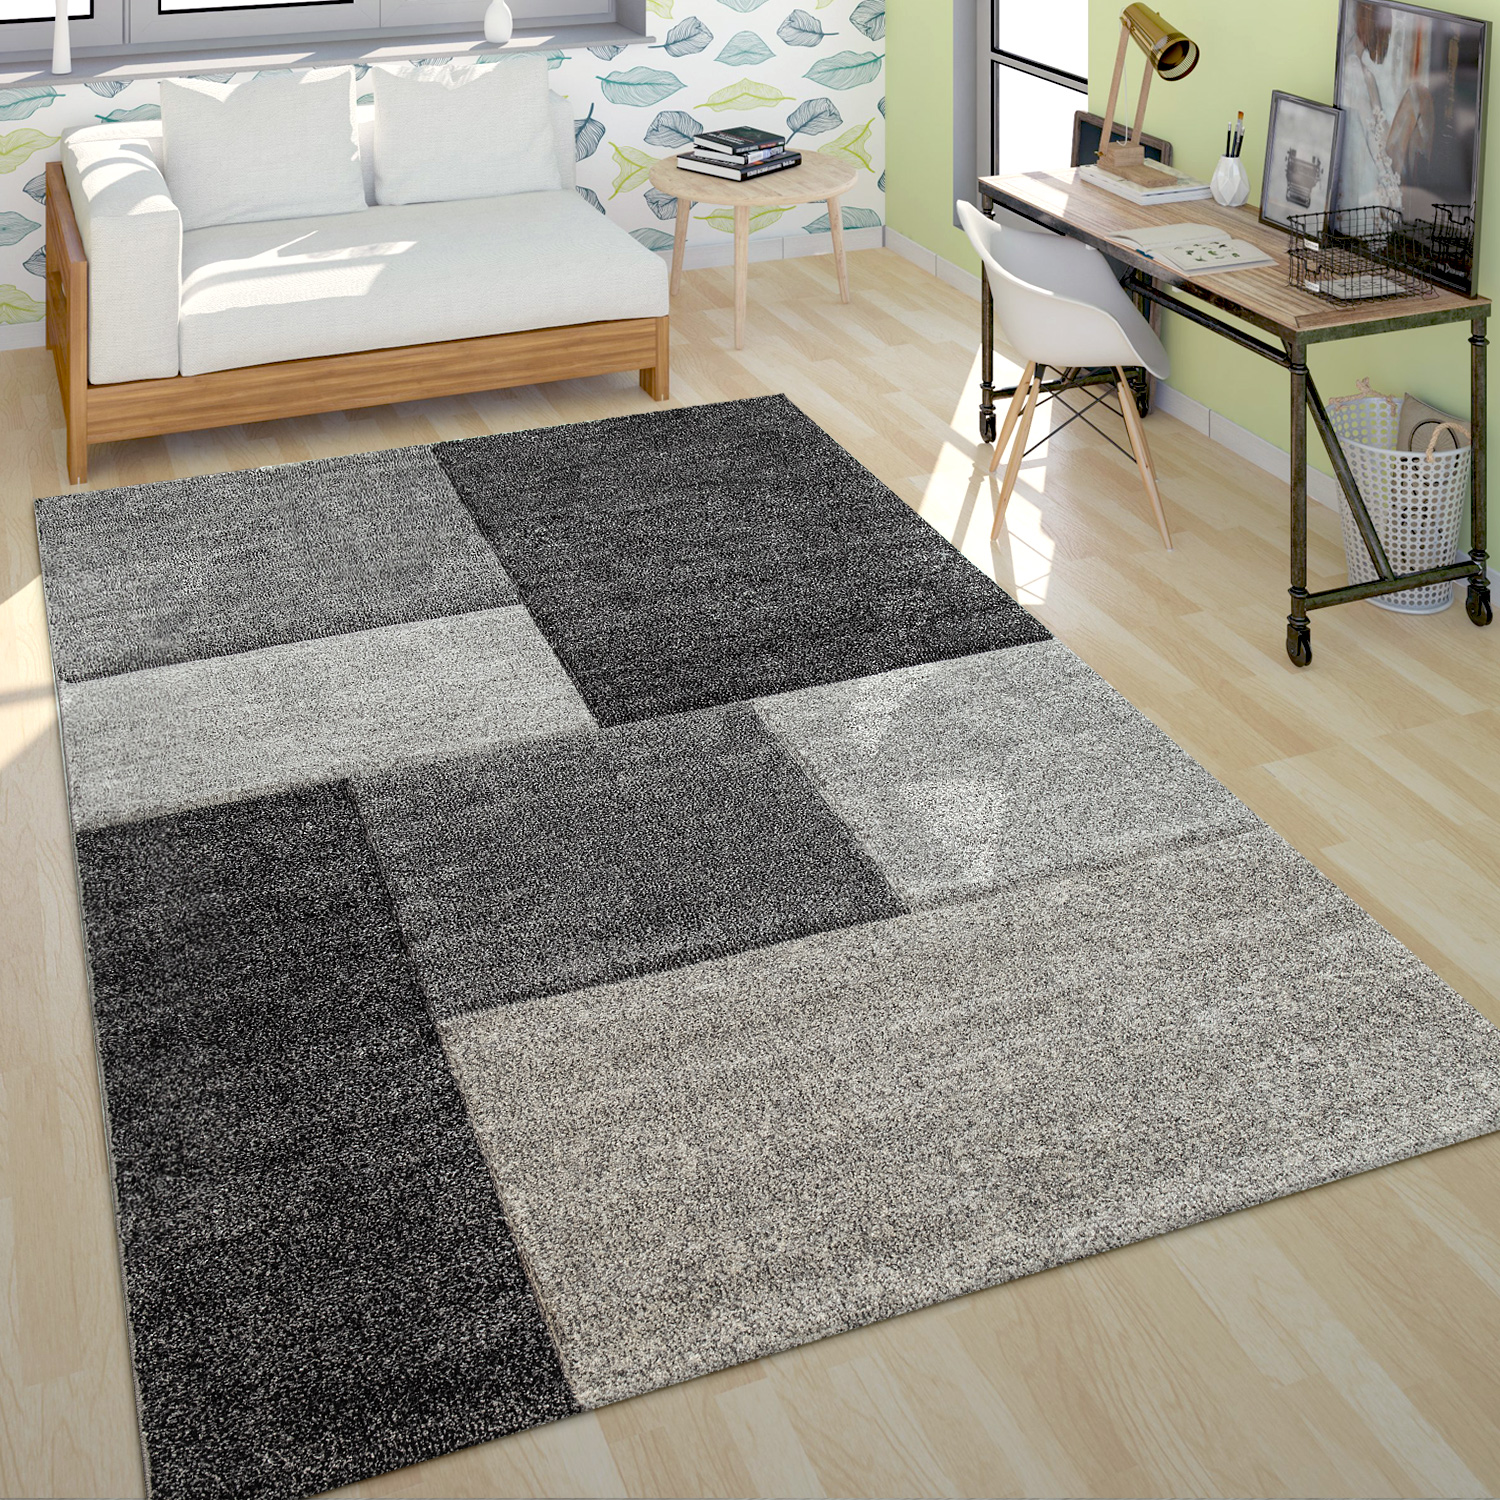 Tapis Salon Tapis Poils Ras Salon À Carreaux Gris